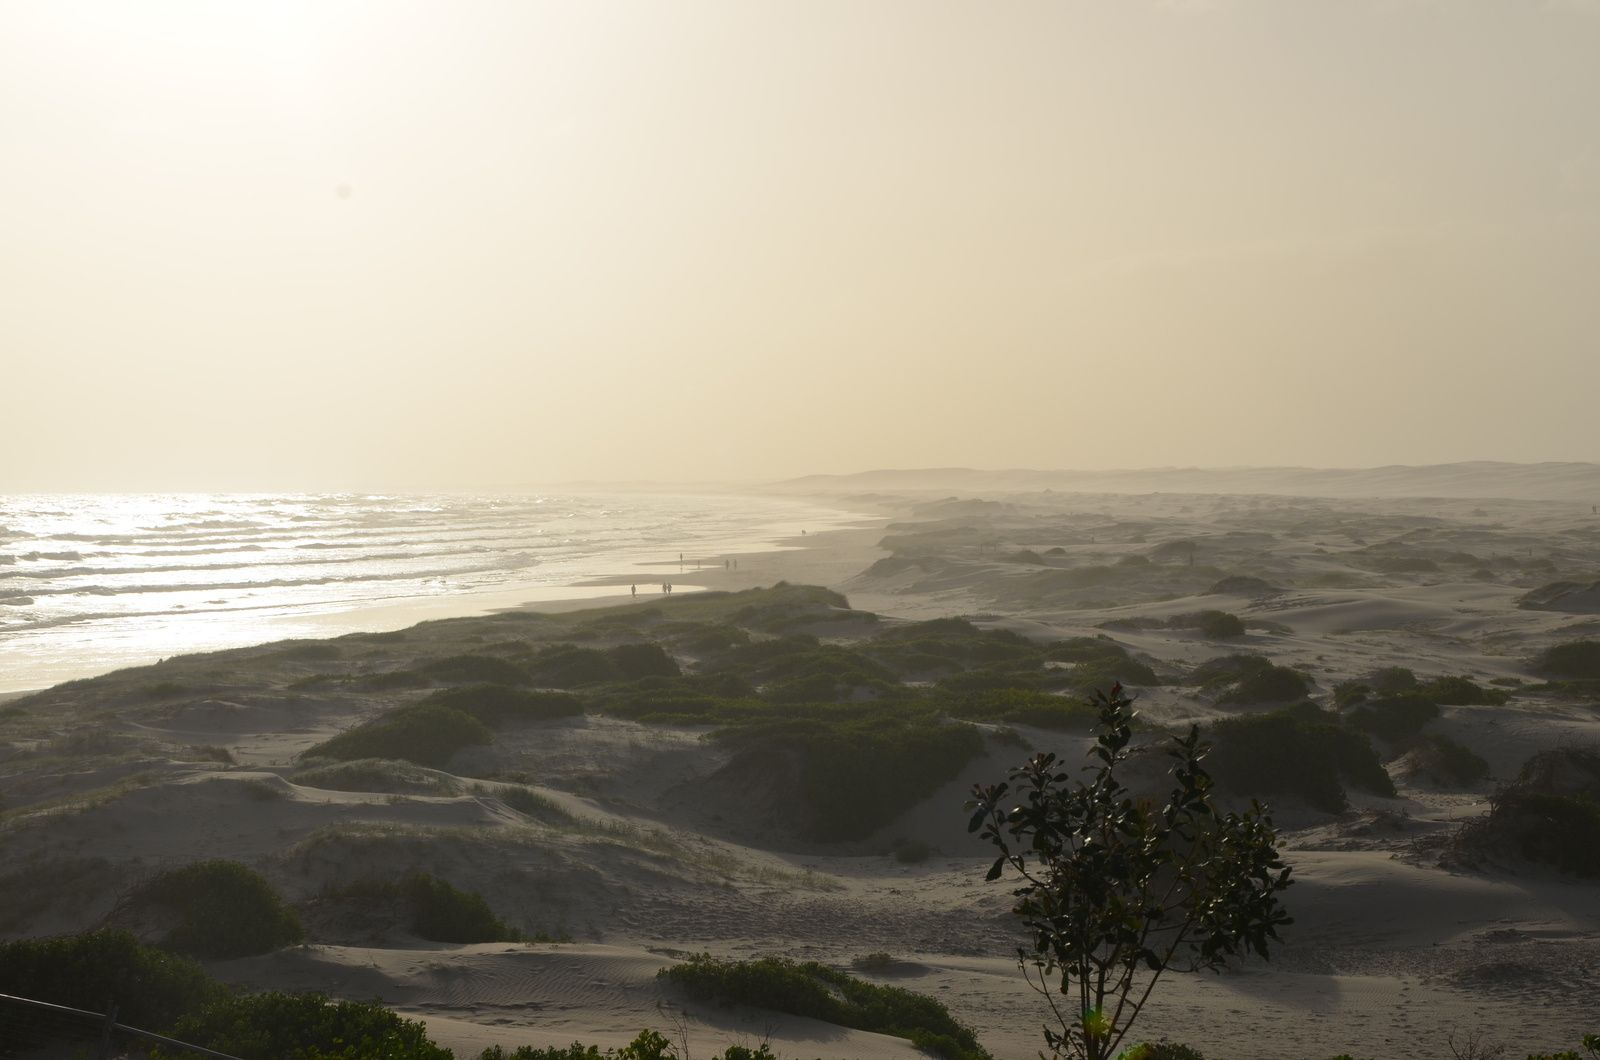 Stockton beach, dune de sable & camping sauvage